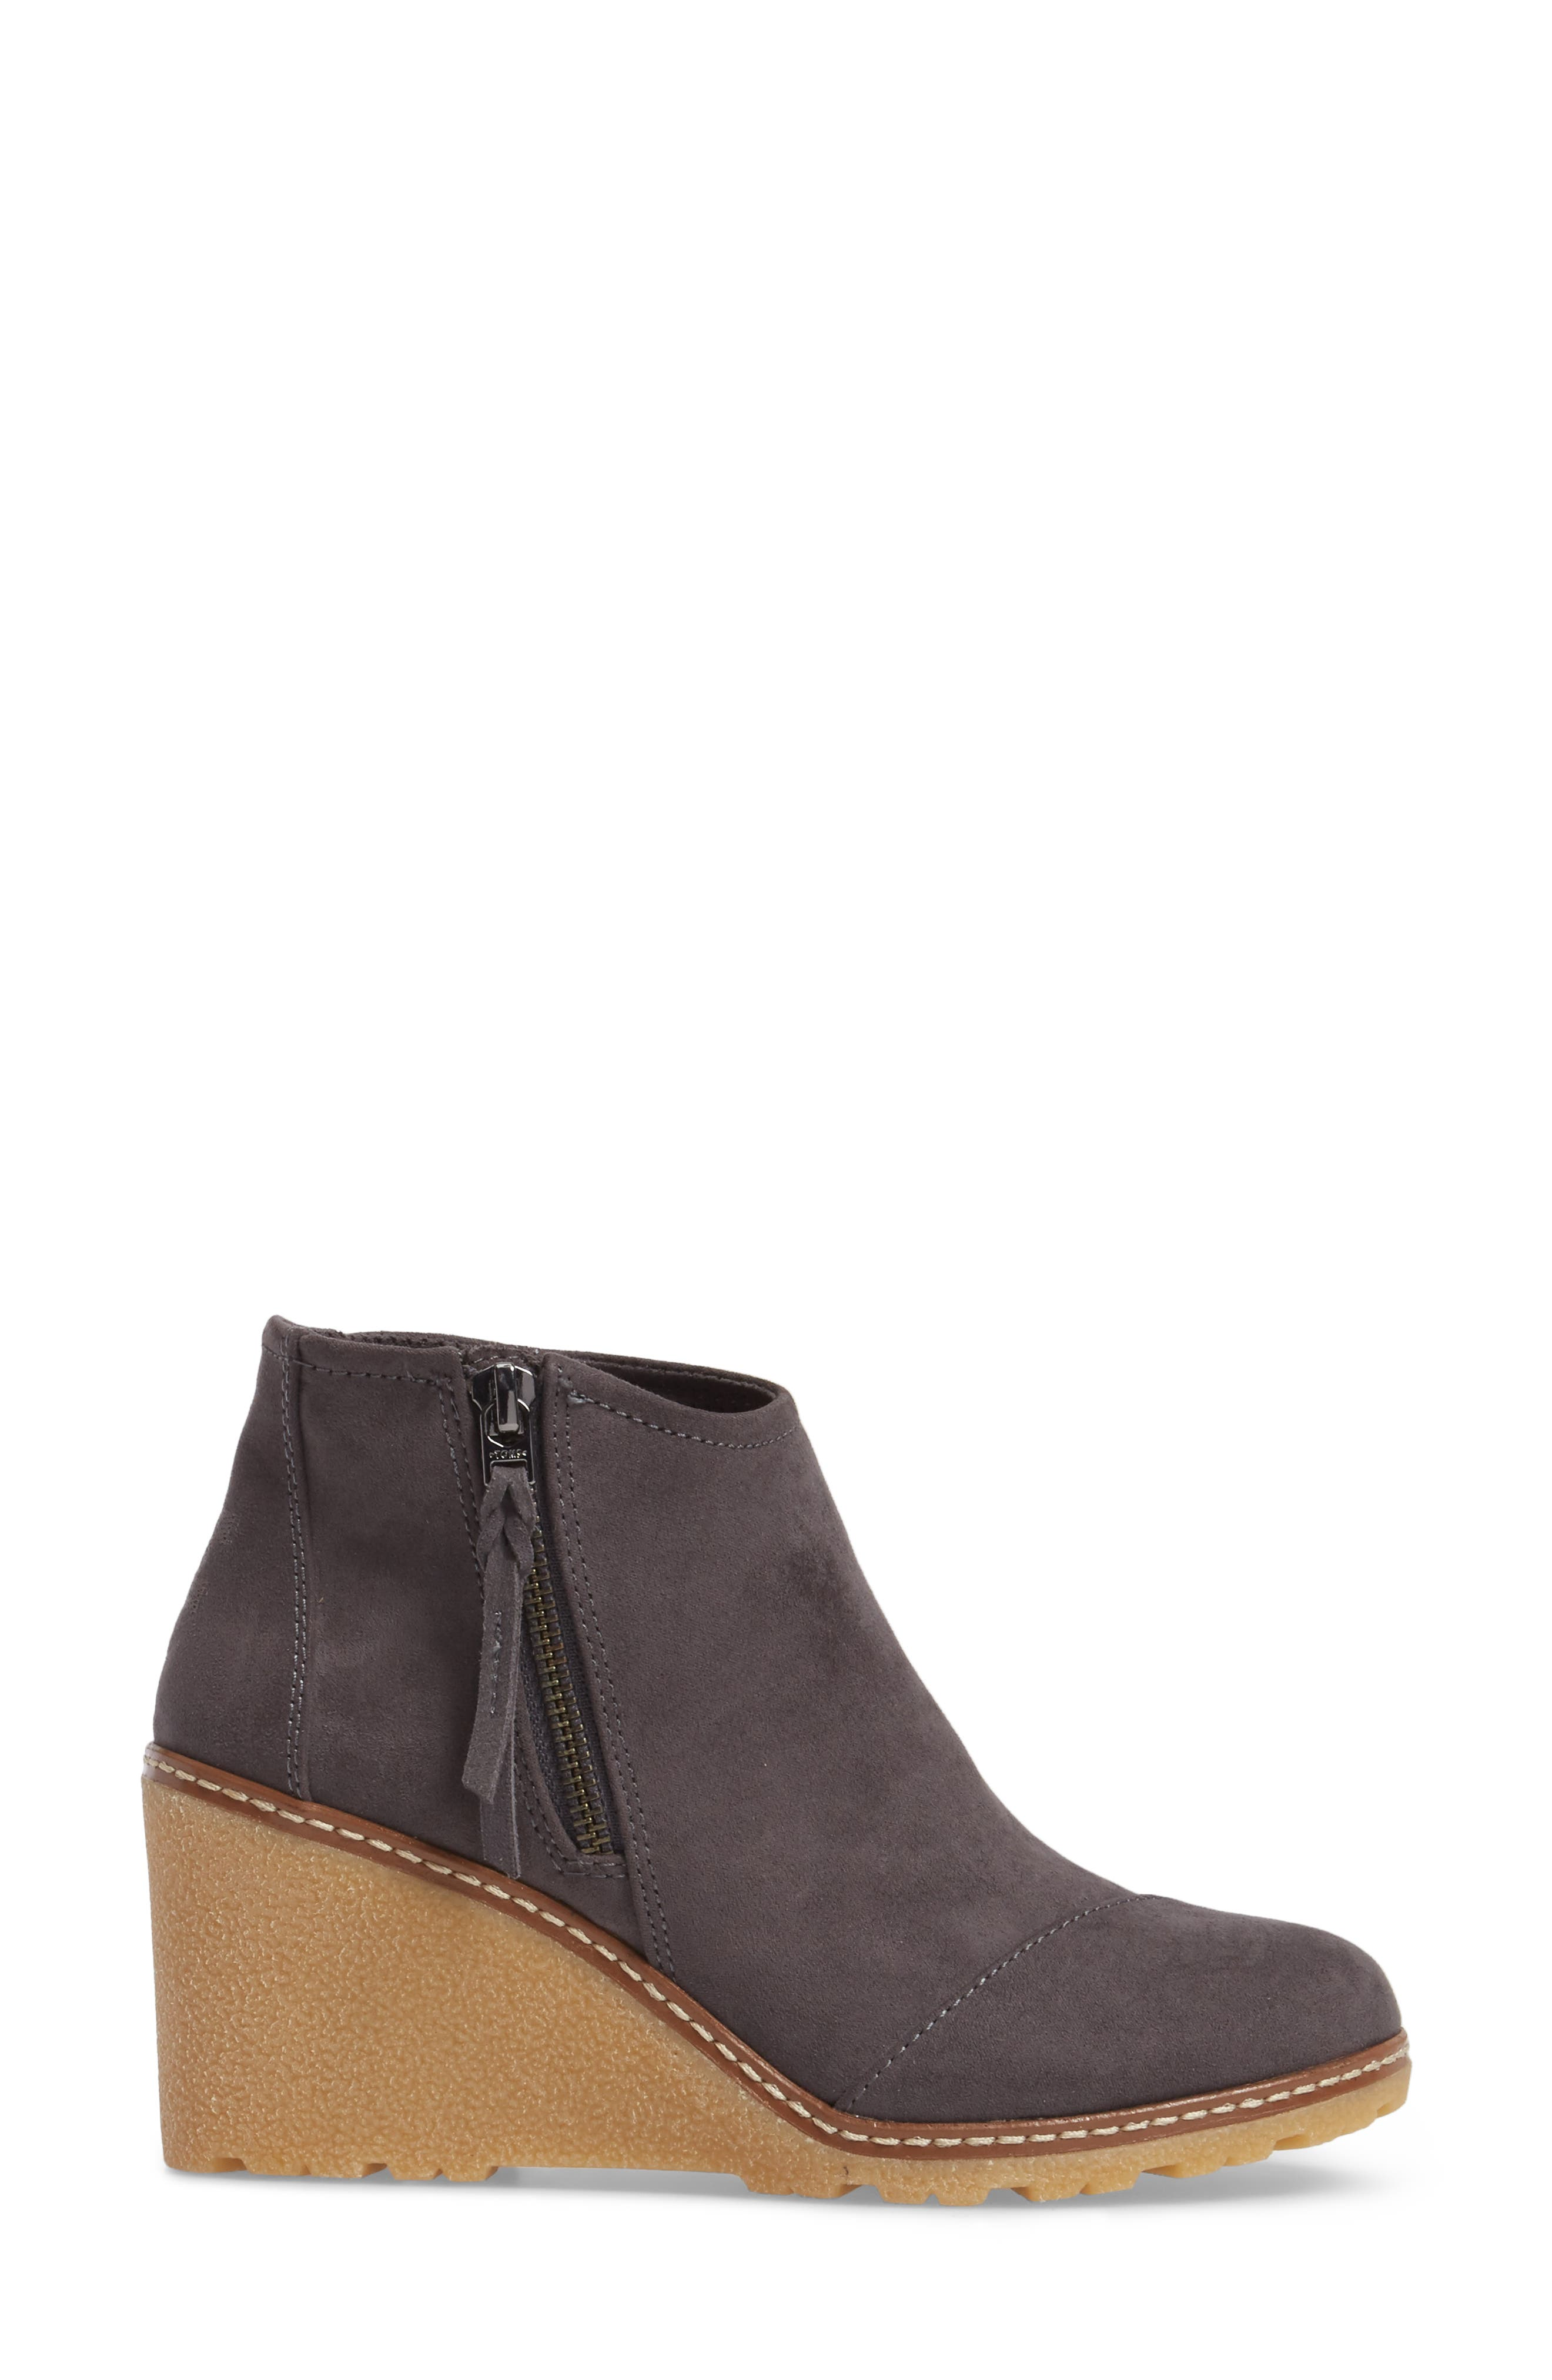 Avery Wedge Bootie,                             Alternate thumbnail 10, color,